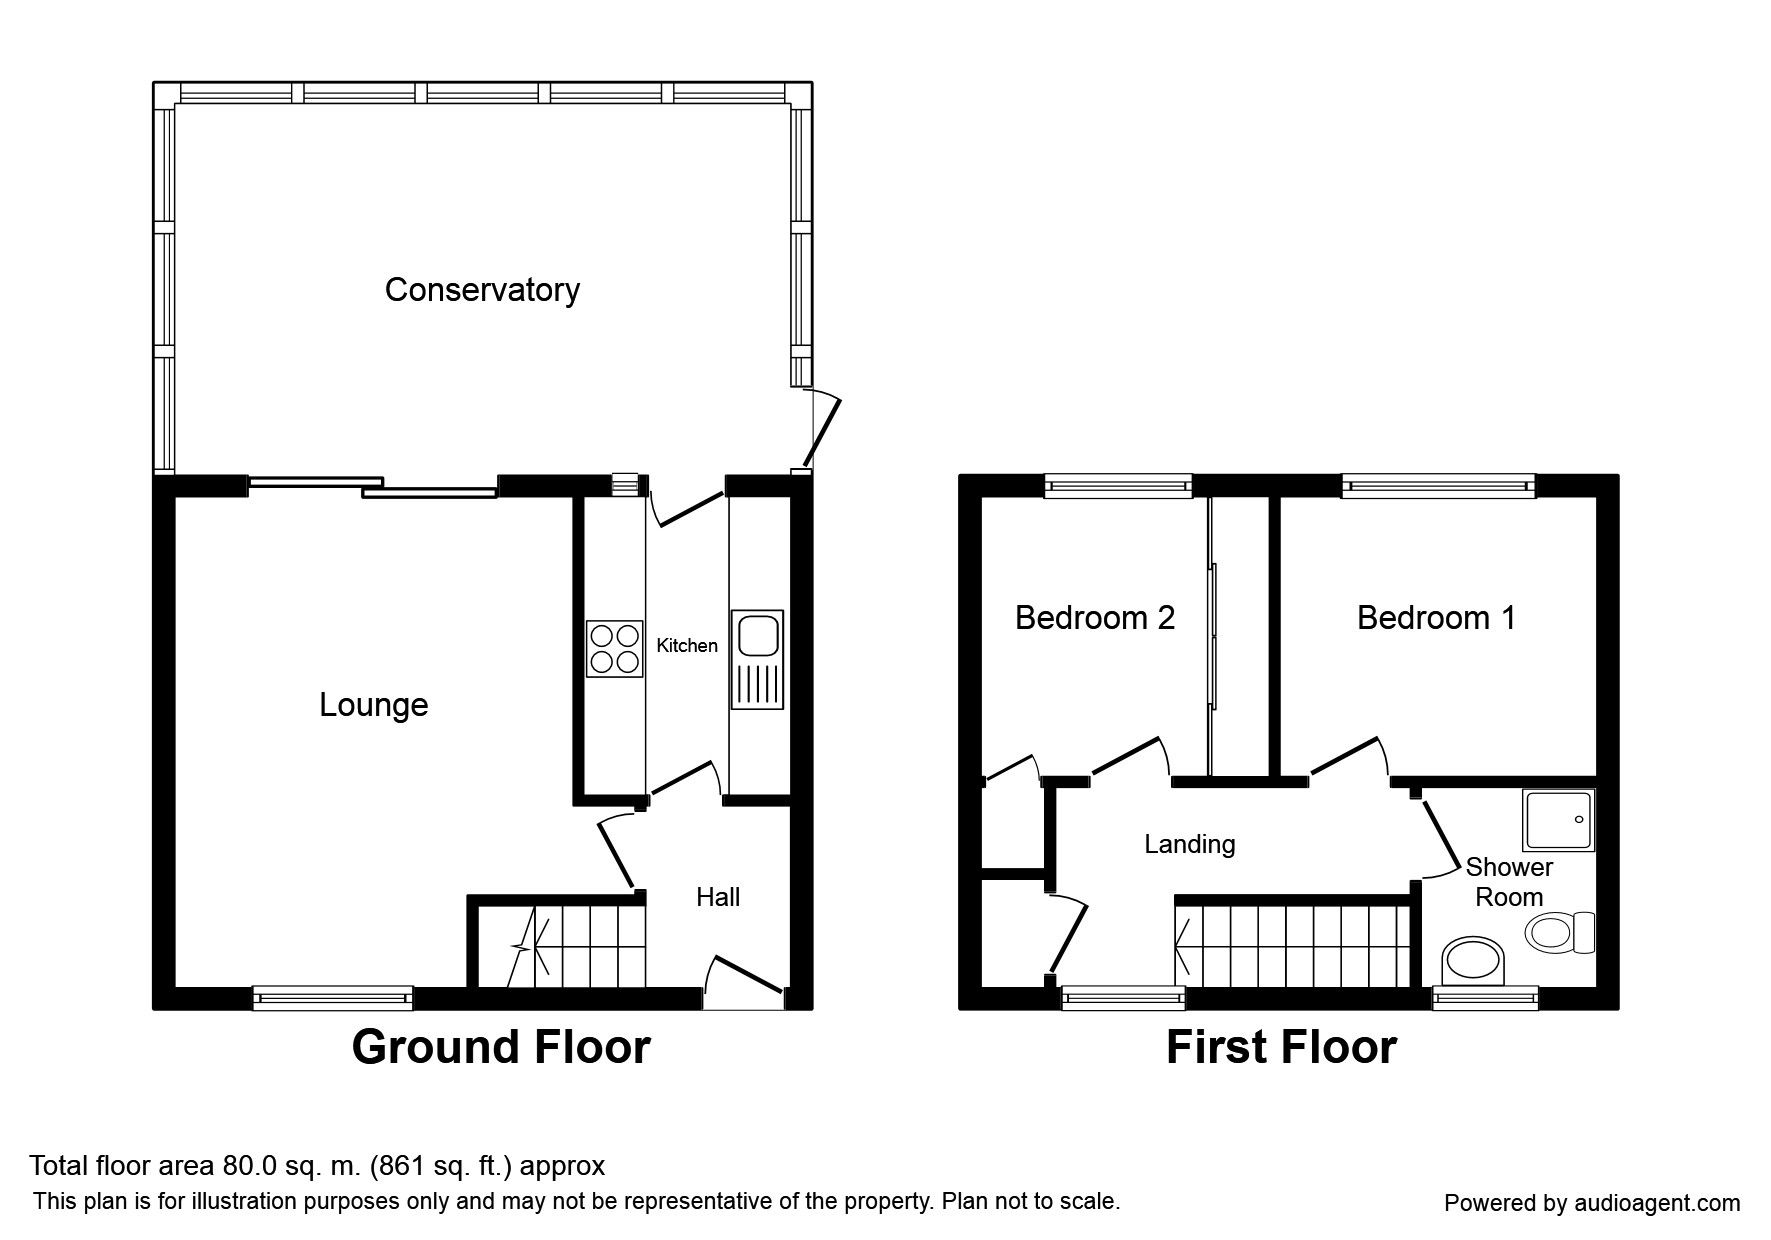 Property for sale in Alnwick Northumberland Find houses and